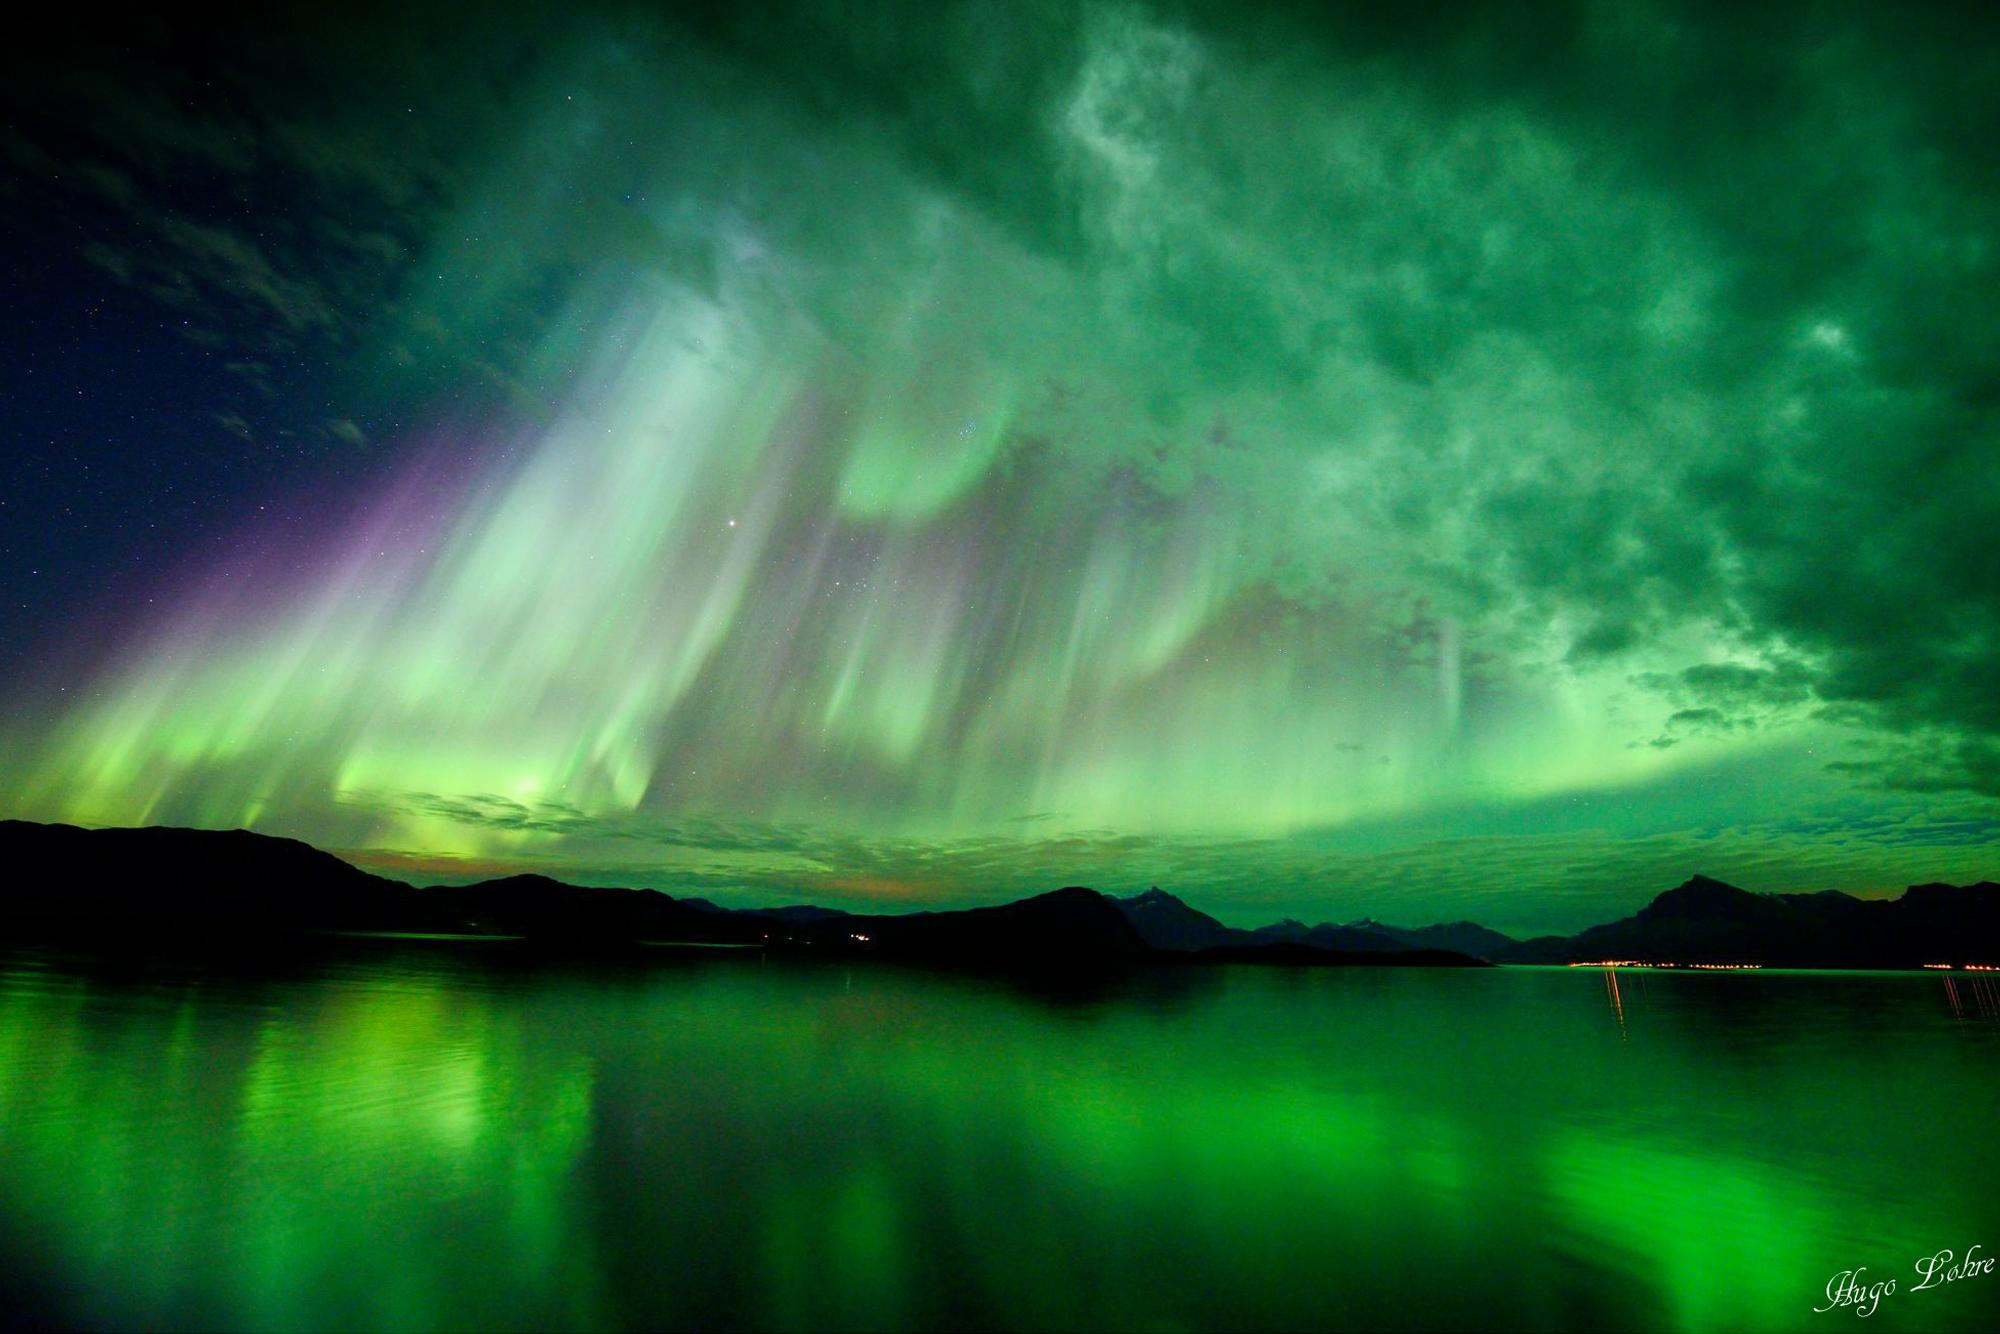 northern and southern lights Find information about the northern lights cannabis strain including reviews from other users, its most common effects, where to find it, and more.